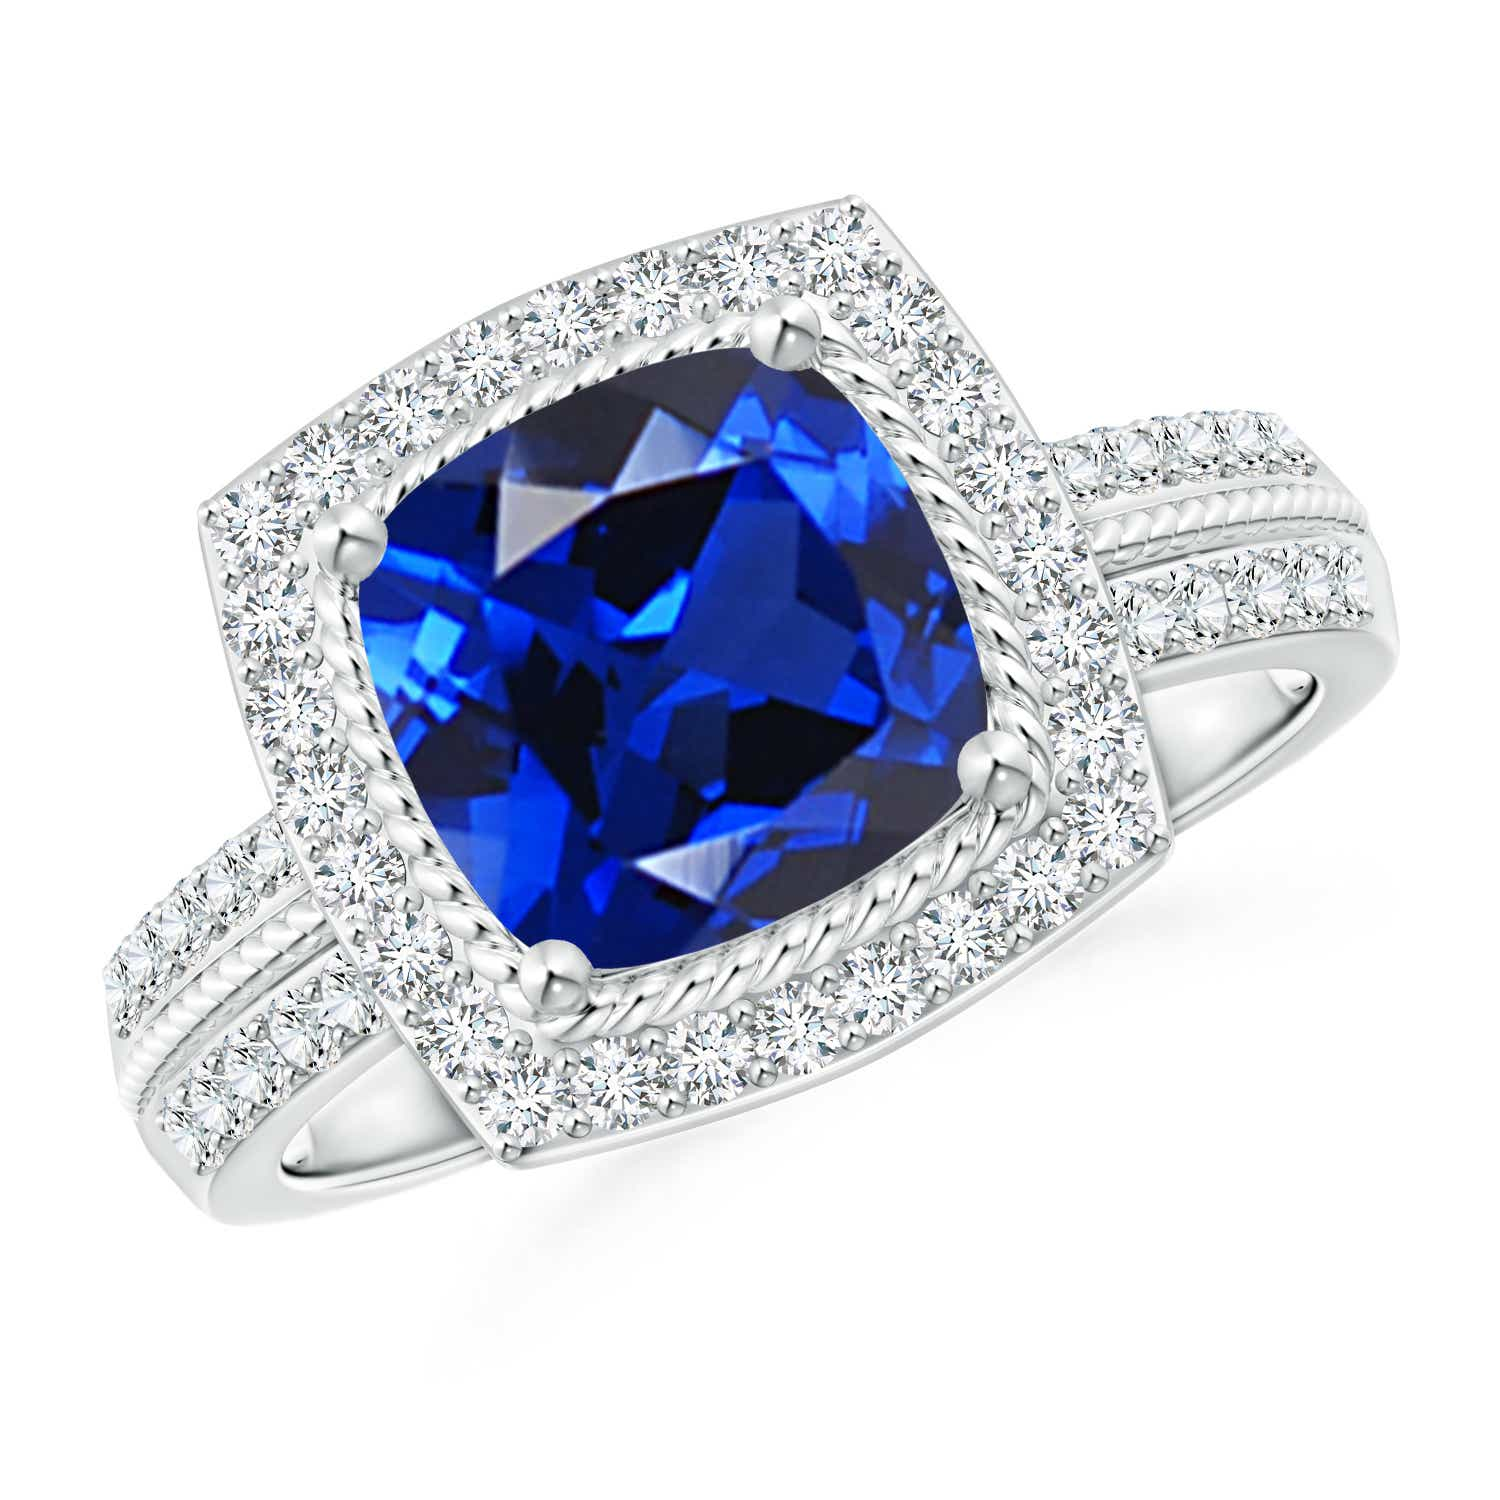 Cushion-Cut Lab Created Sapphire Ring with Diamond Halo - Angara.com